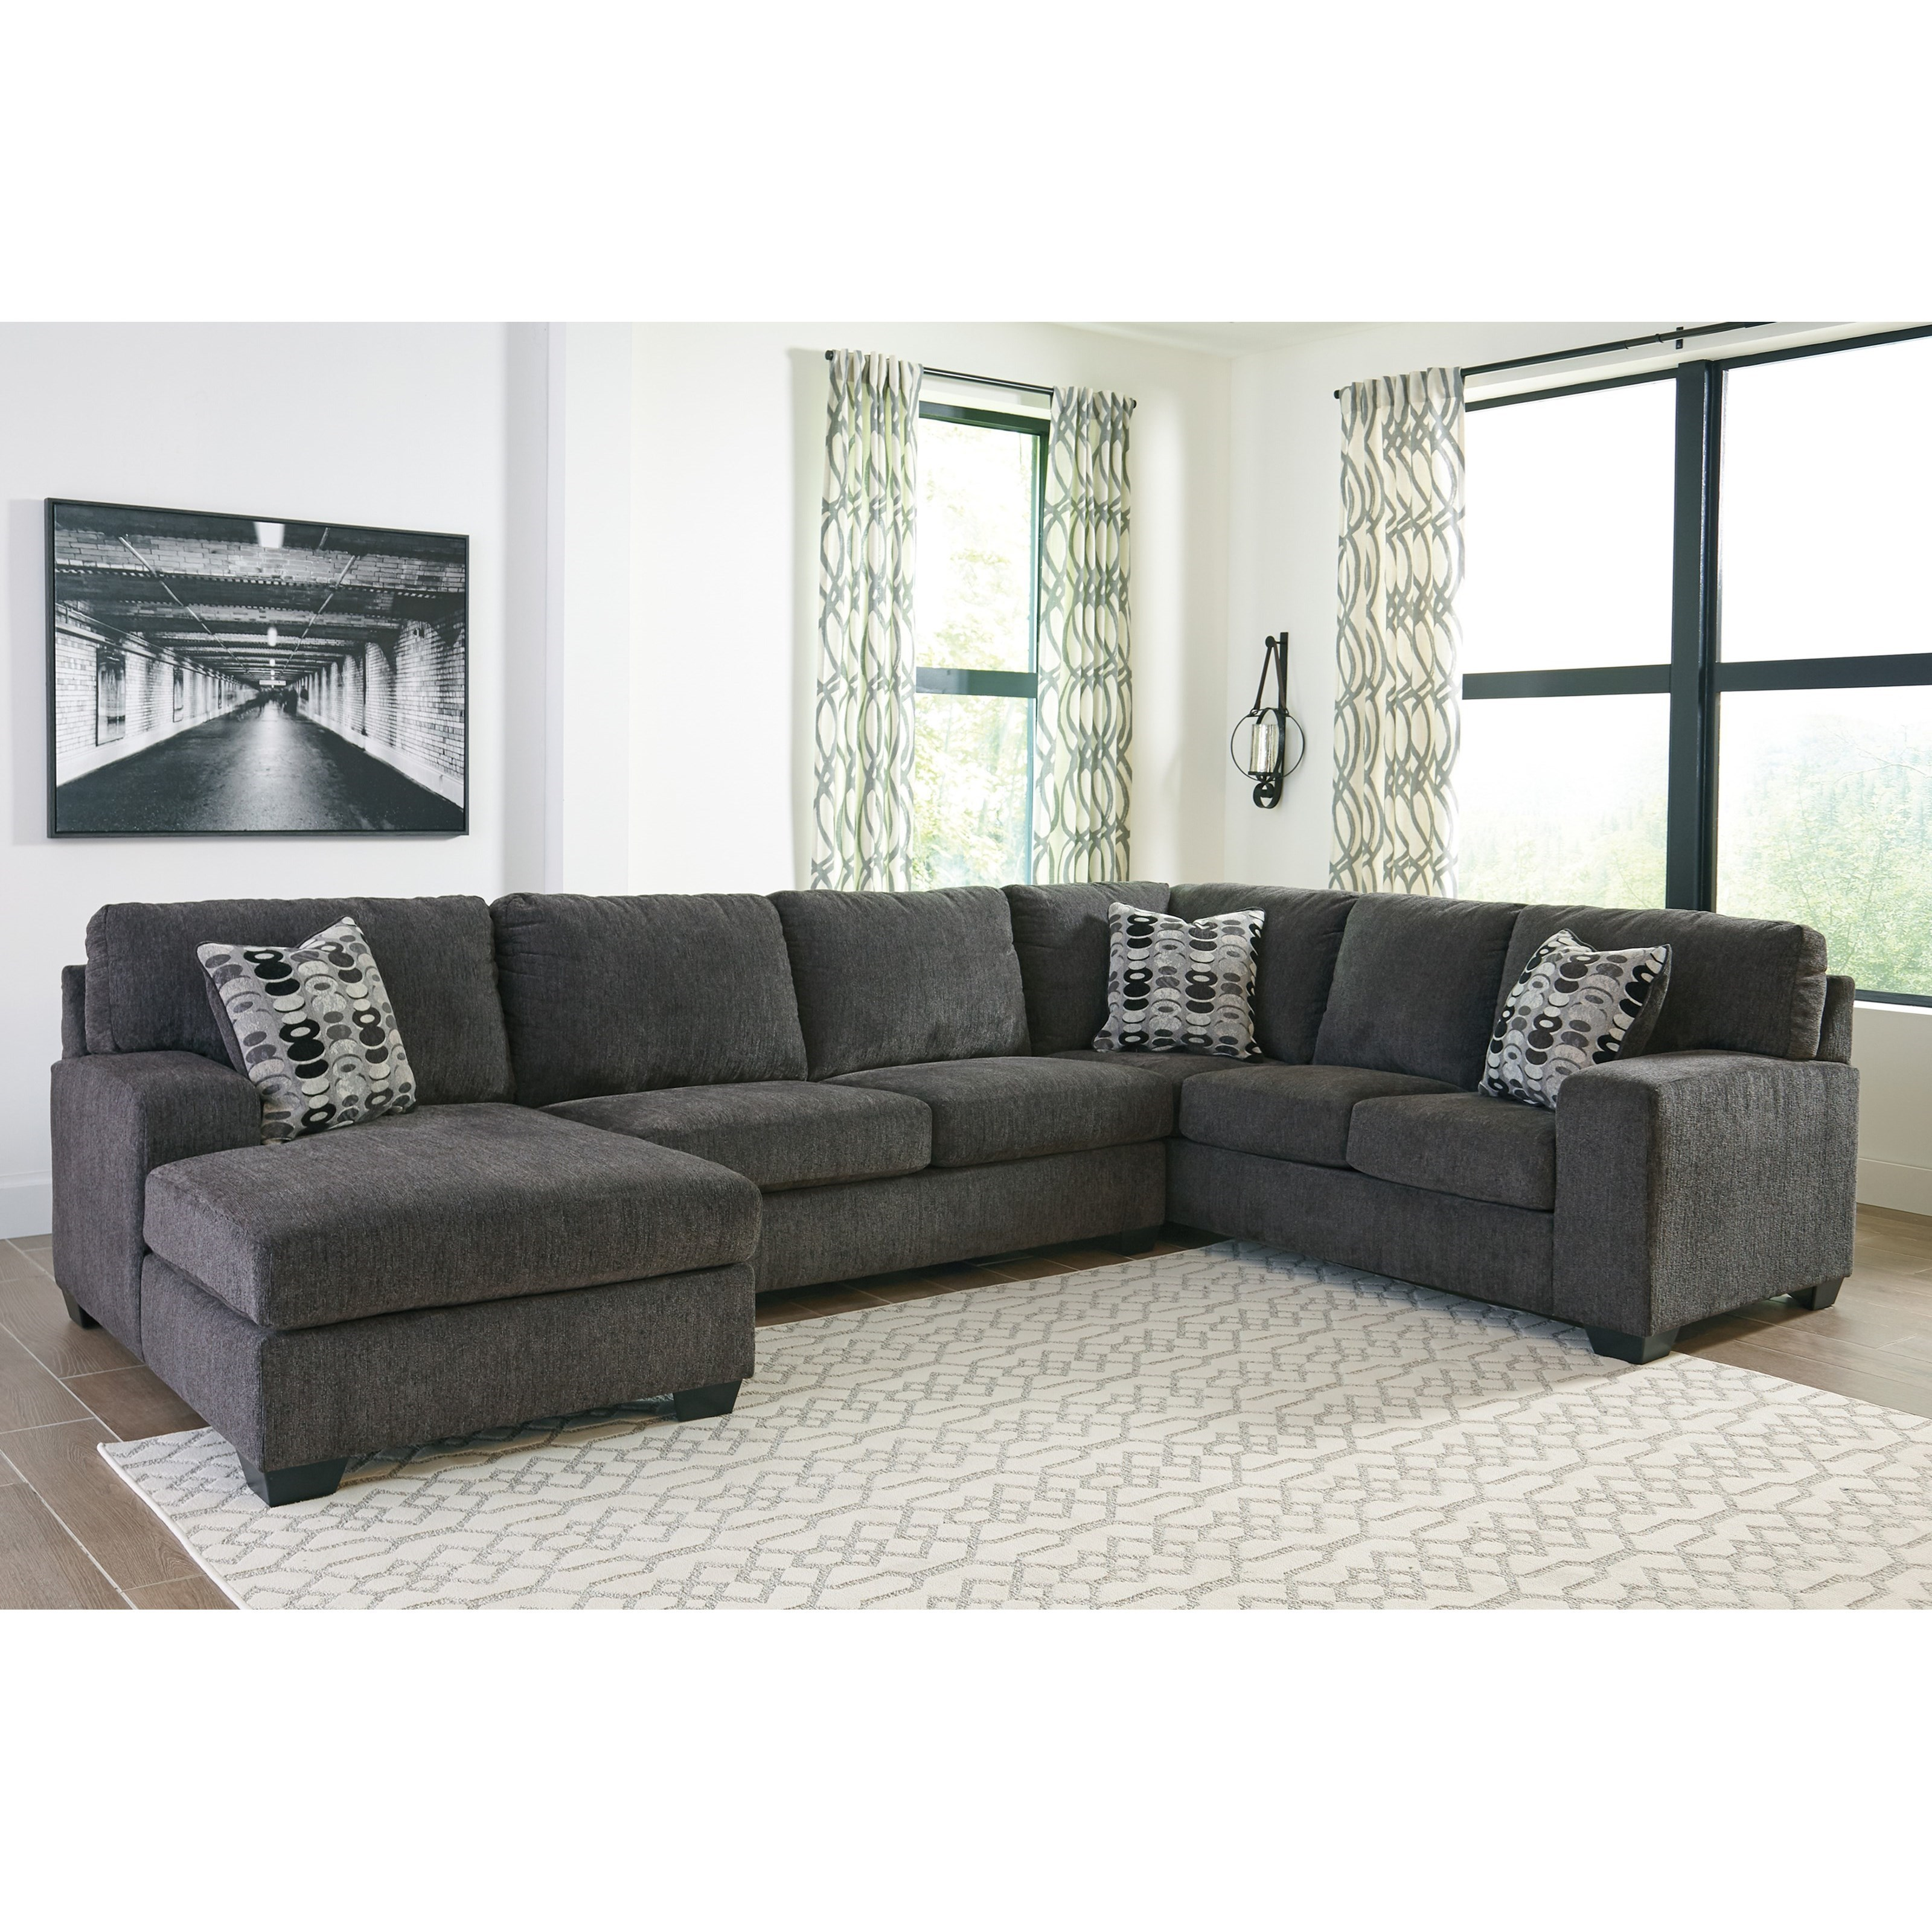 Signature Design By Ashley Ballinasloe Contemporary 3 Piece Sectional With Chaise Royal Furniture Sectional Sofas